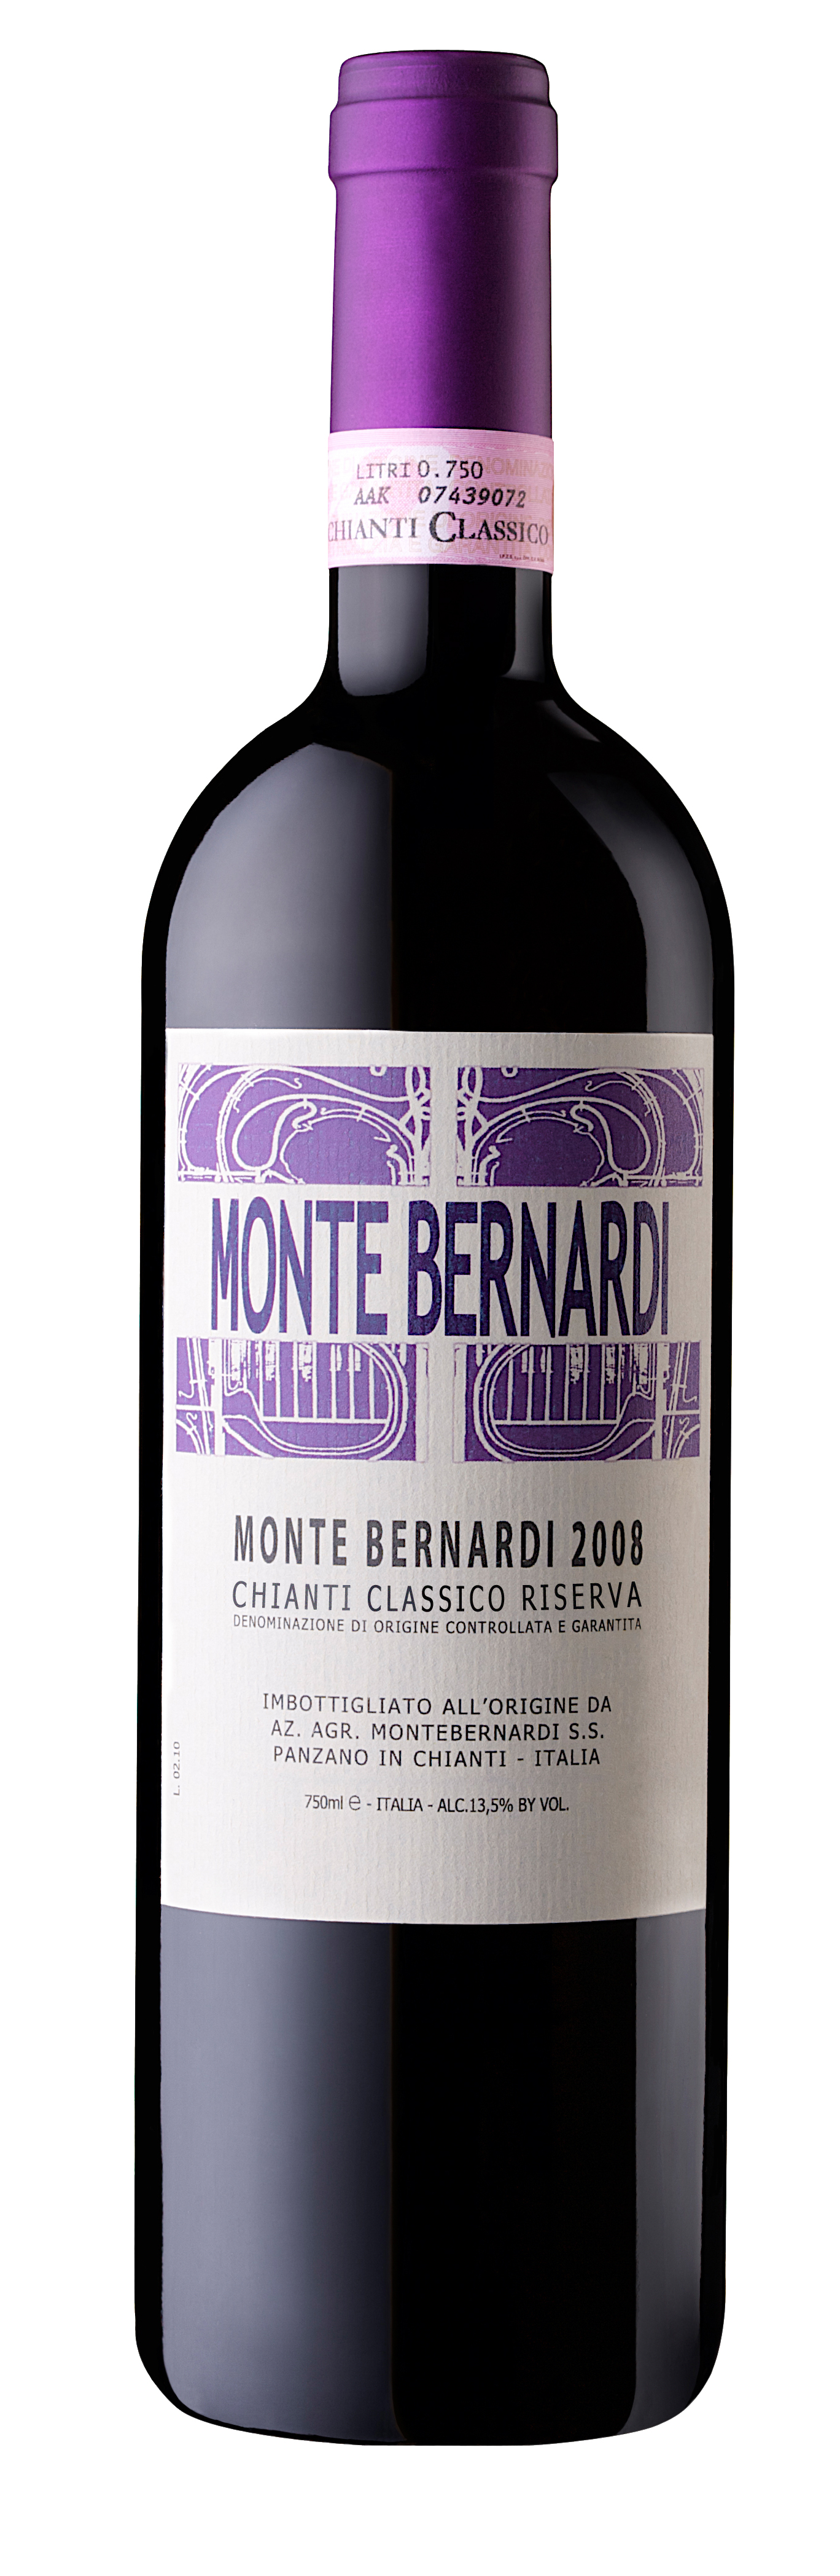 This is an elegant and rich Chianti Classico Riserva, made from Sangiovese (95%) and Canaiolo Nero (5%) grapes.  After natural fermentation in a combination of oak and stainless steel, the wine is placed in oak barrels where it undergoes malolactic fermentation. The wine remains in oak for 18 to 22 months, followed by finishing in bottle for a minimum of 6 months.